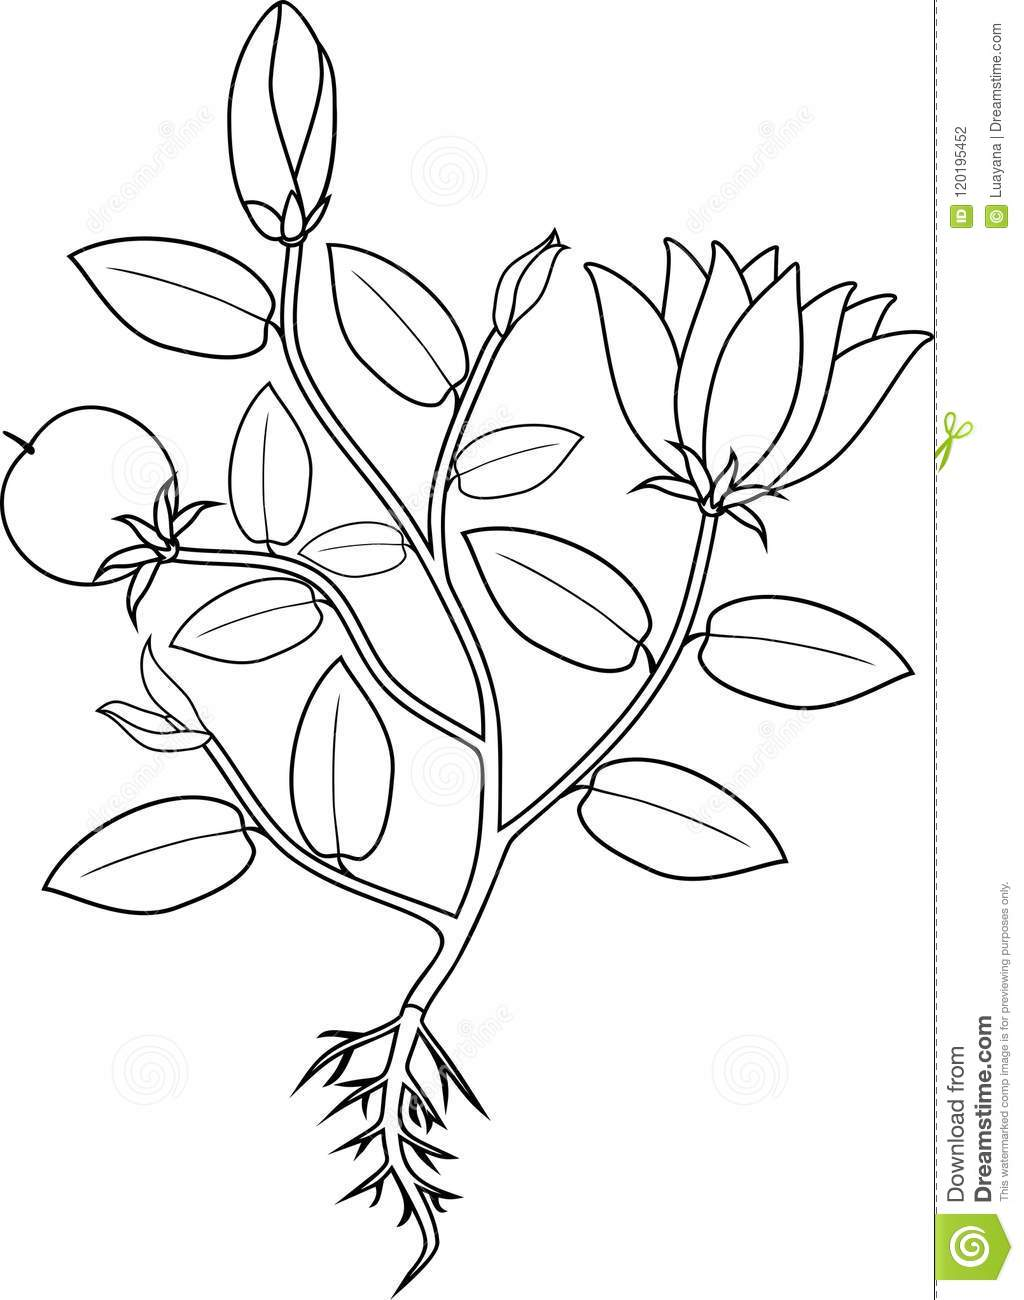 Coloring Page. Plant With Flowers, Leaves, Fruit And Root ...